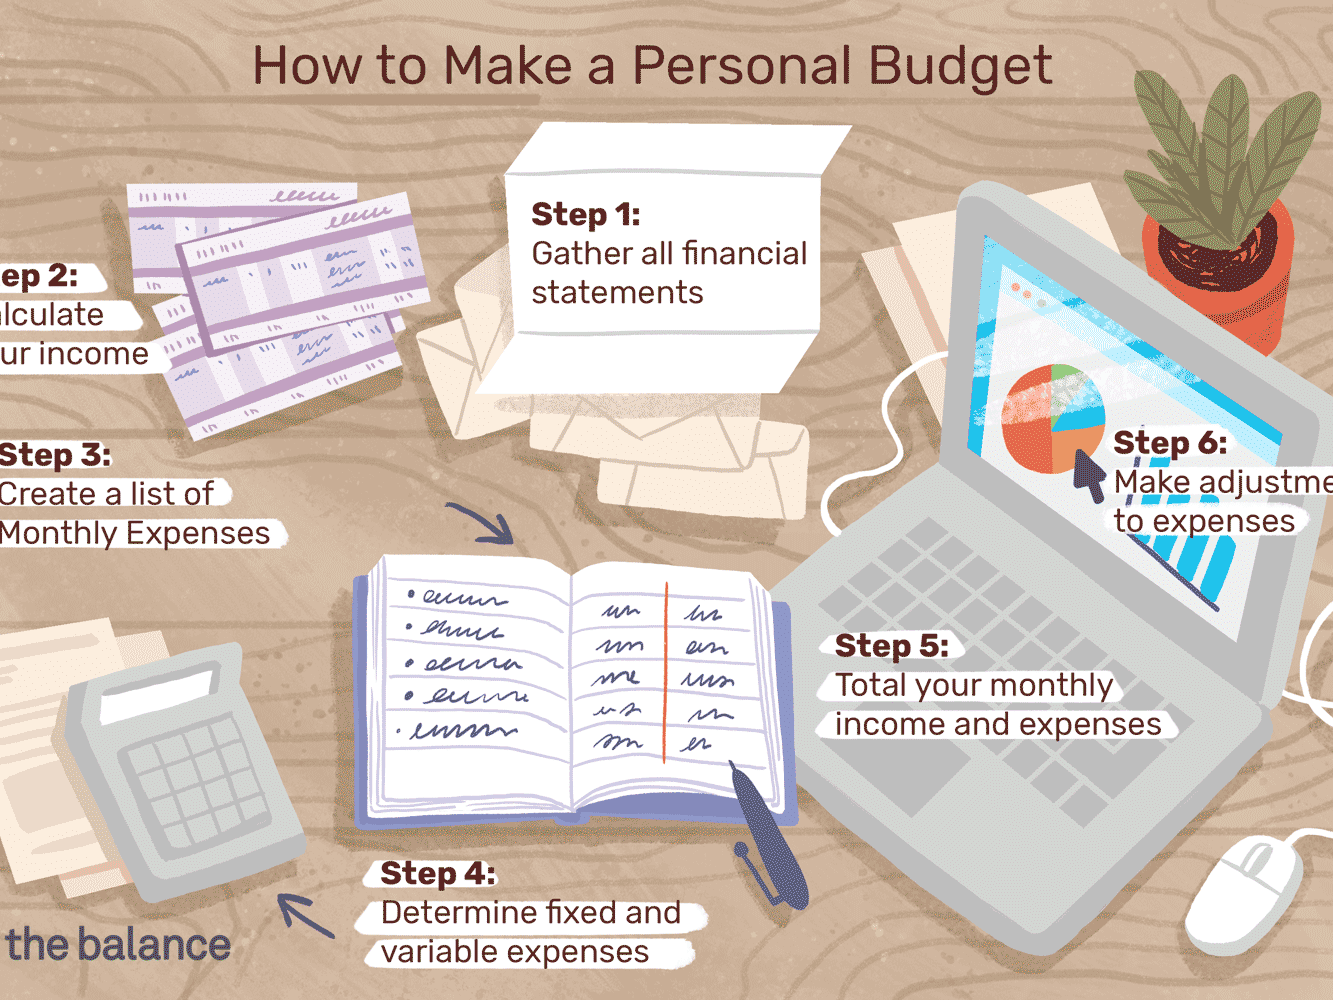 Step By Step Guide To Make A Personal Budget